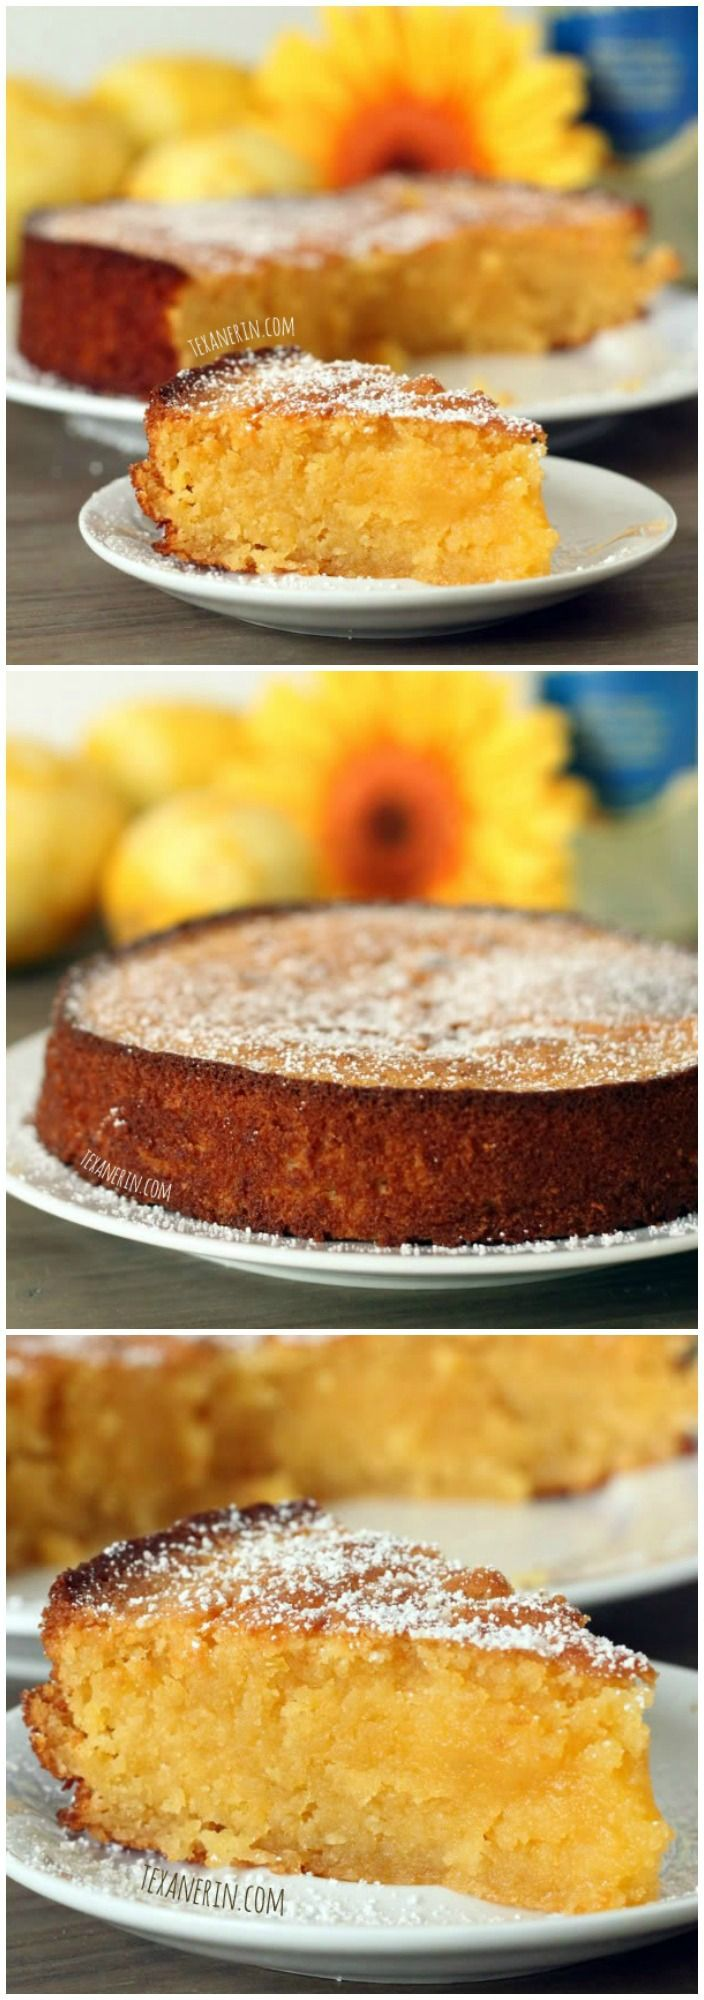 Italian lemon cake (also known as torta caprese bianca) is made with almond flour